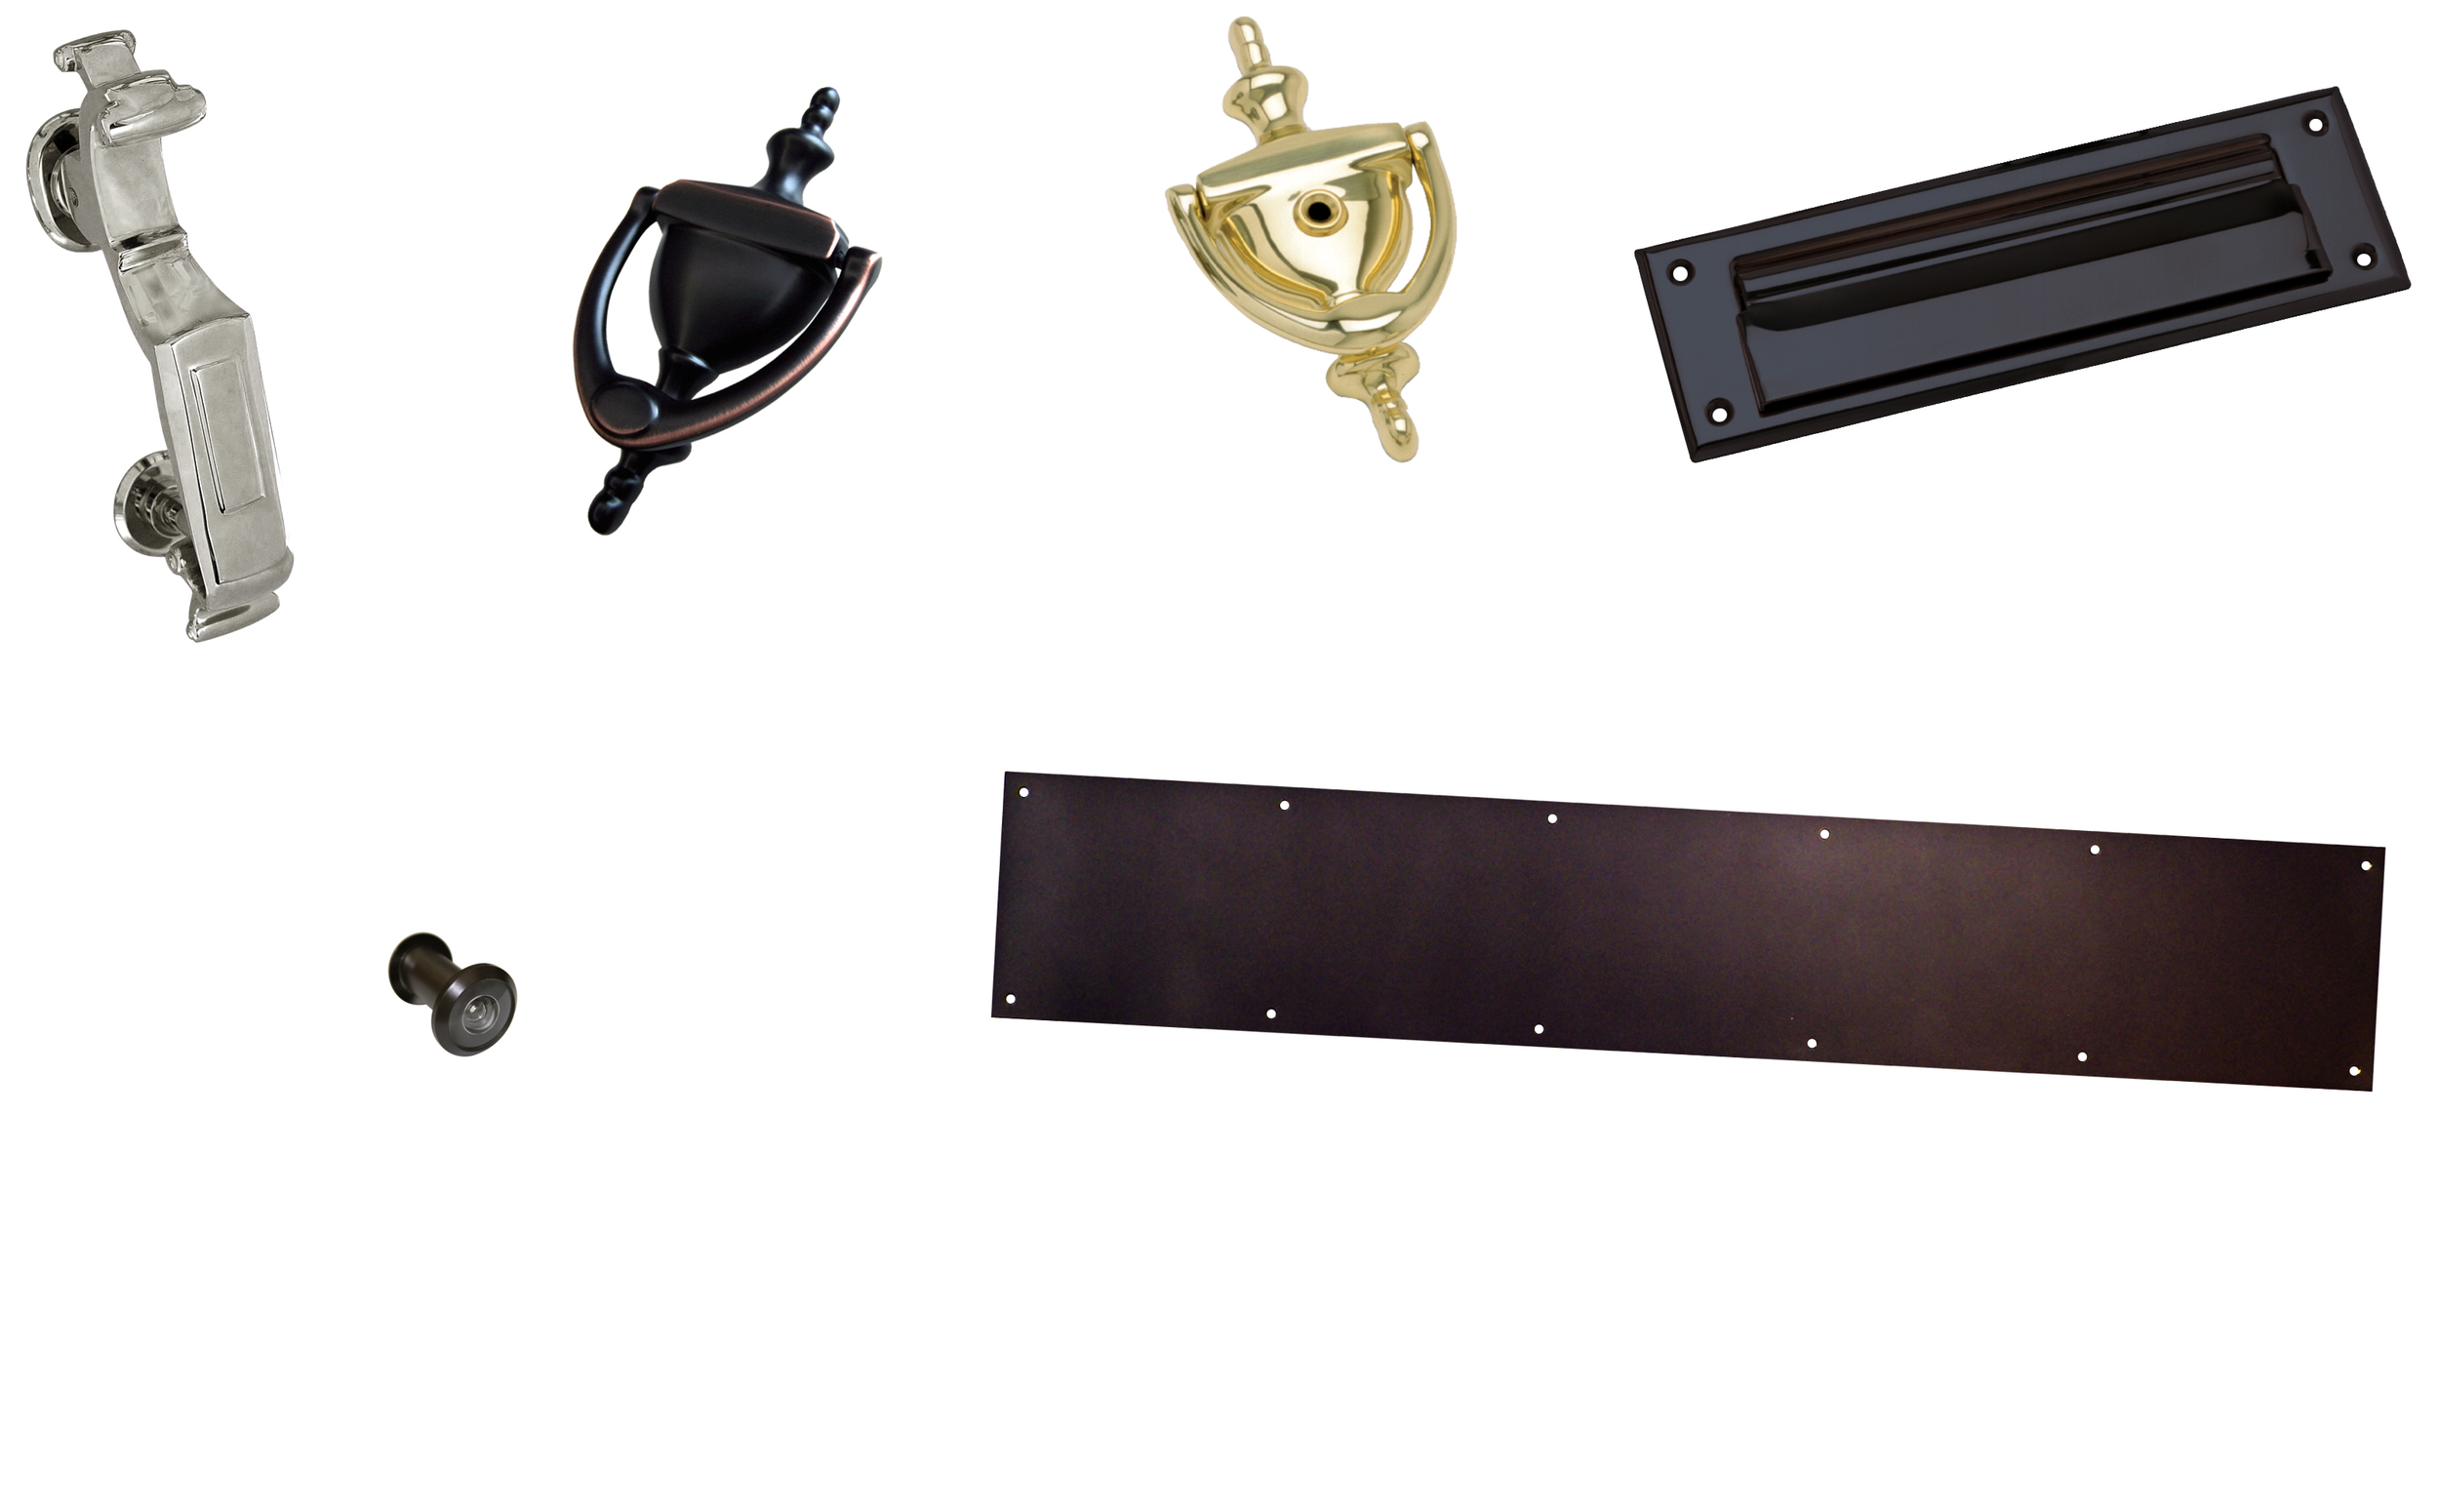 Door Accessories Collage.jpg